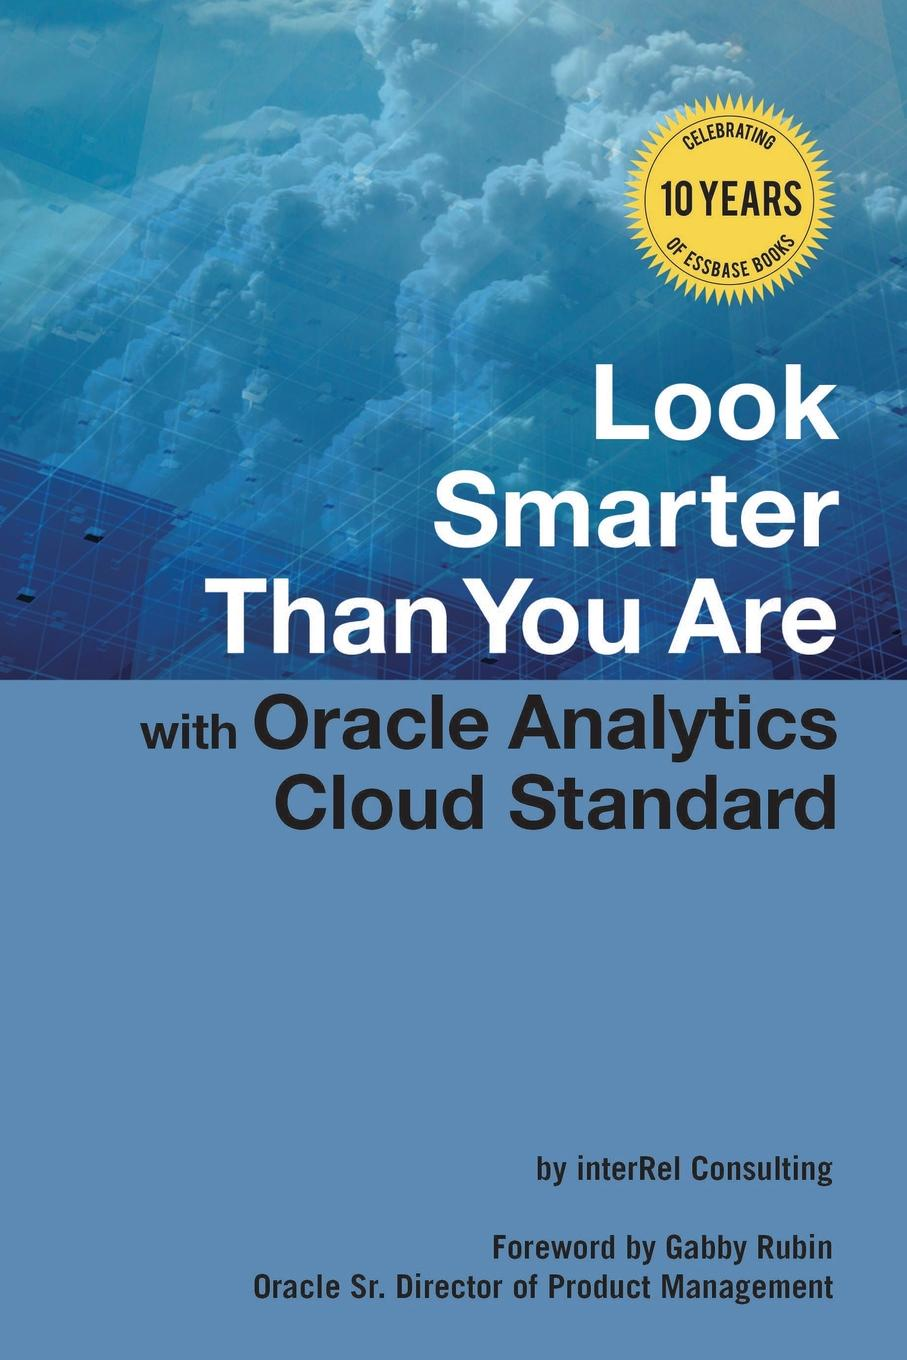 Edward Roske, Tracy McMullen, Glenn Schwartzberg Look Smarter Than You Are with Oracle Analytics Cloud Standard Edition елочная игрушка шишка стекло ссср 1960 е годы